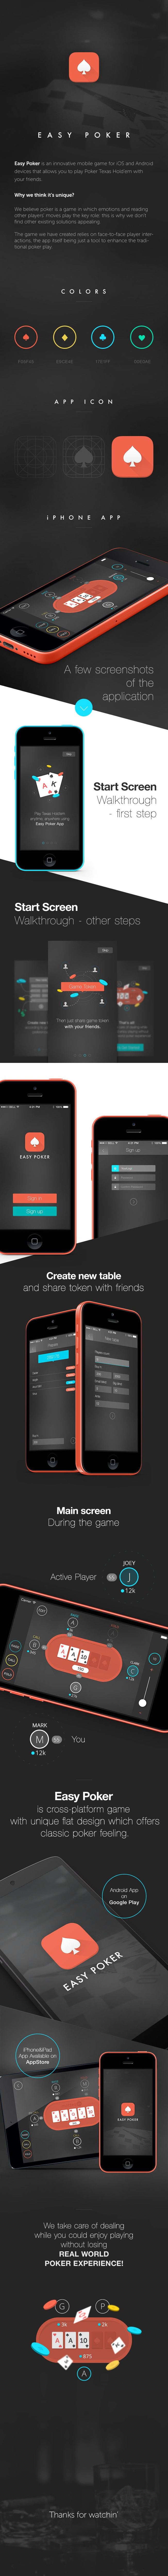 Easy Poker App - Mobile Interface on Creattica: Your source for design inspiration